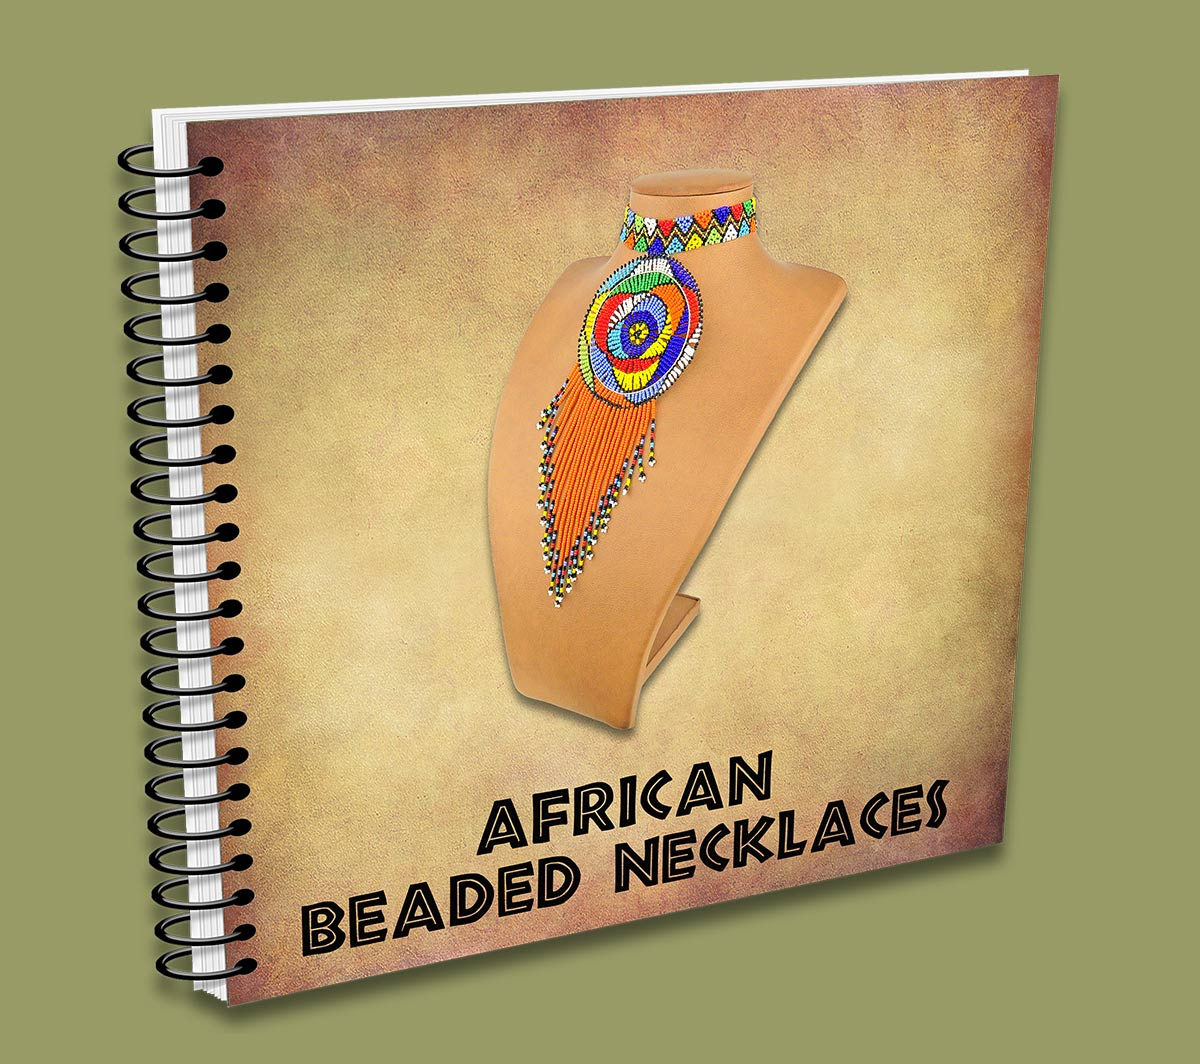 african-beaded-necklaces-catalogue-2